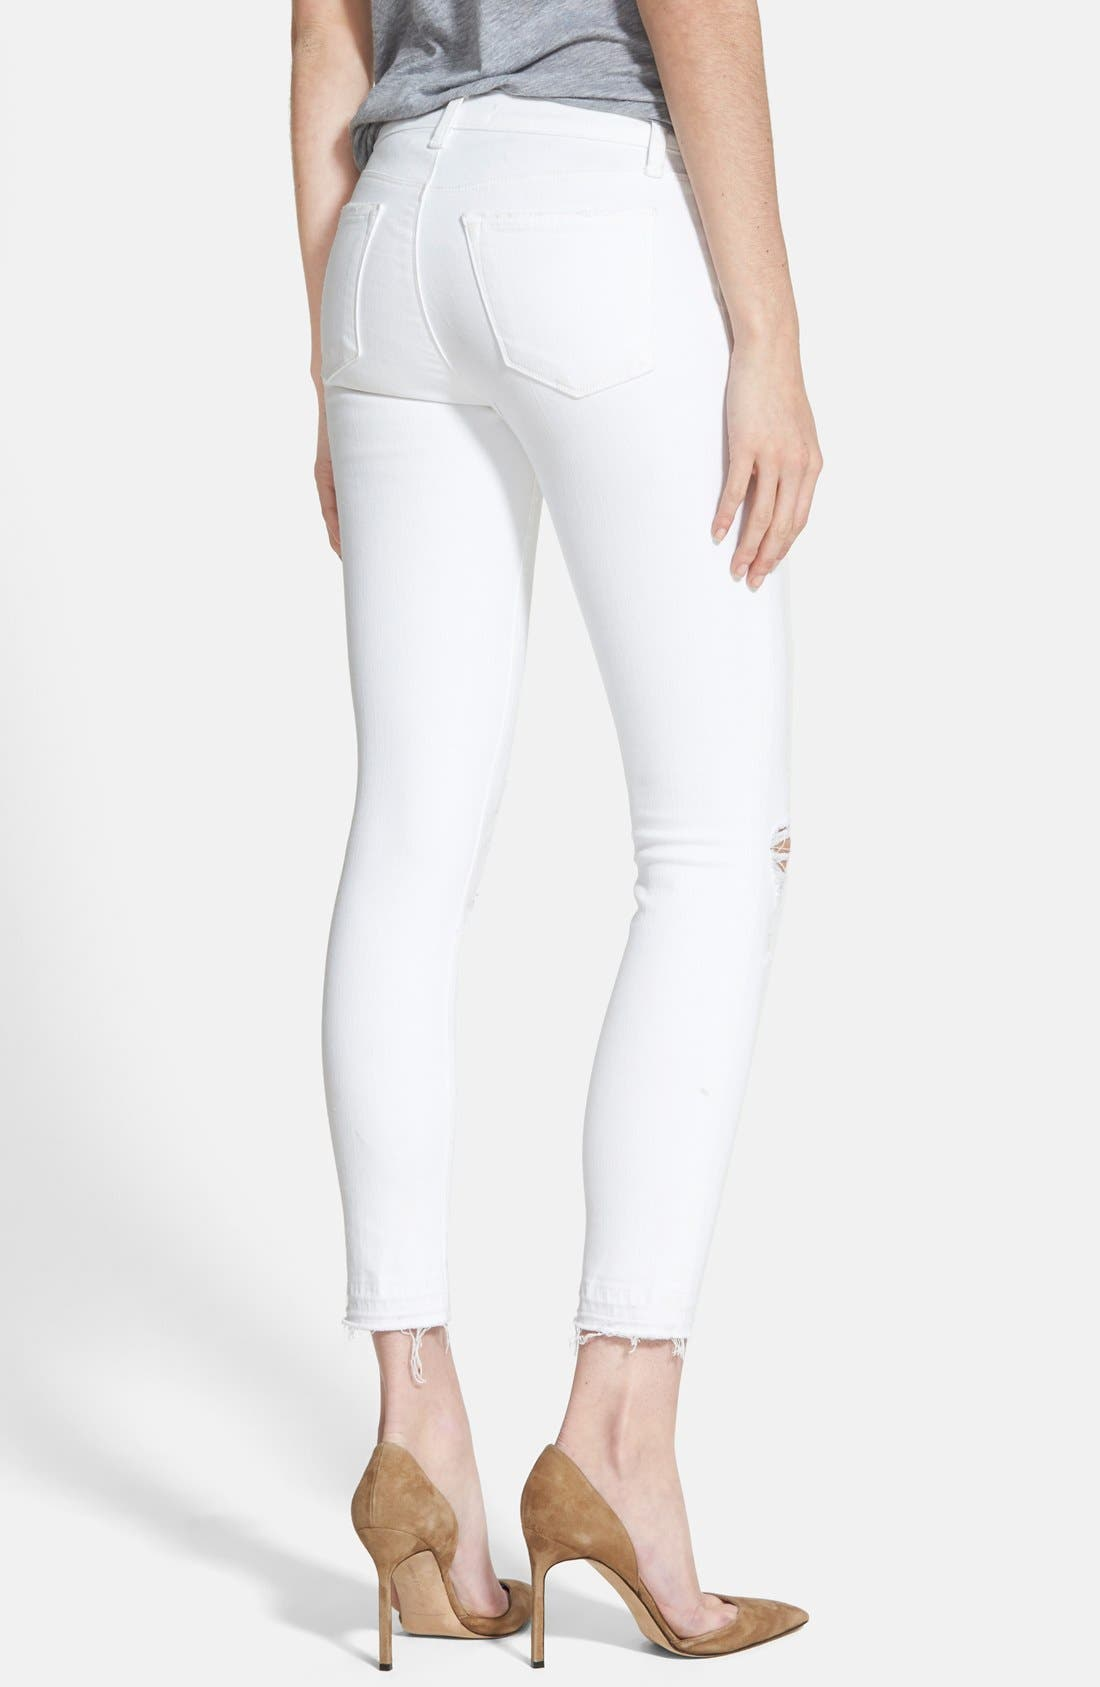 J Brand Low Rise Crop Jeans (Demented White Distressed) | Nordstrom